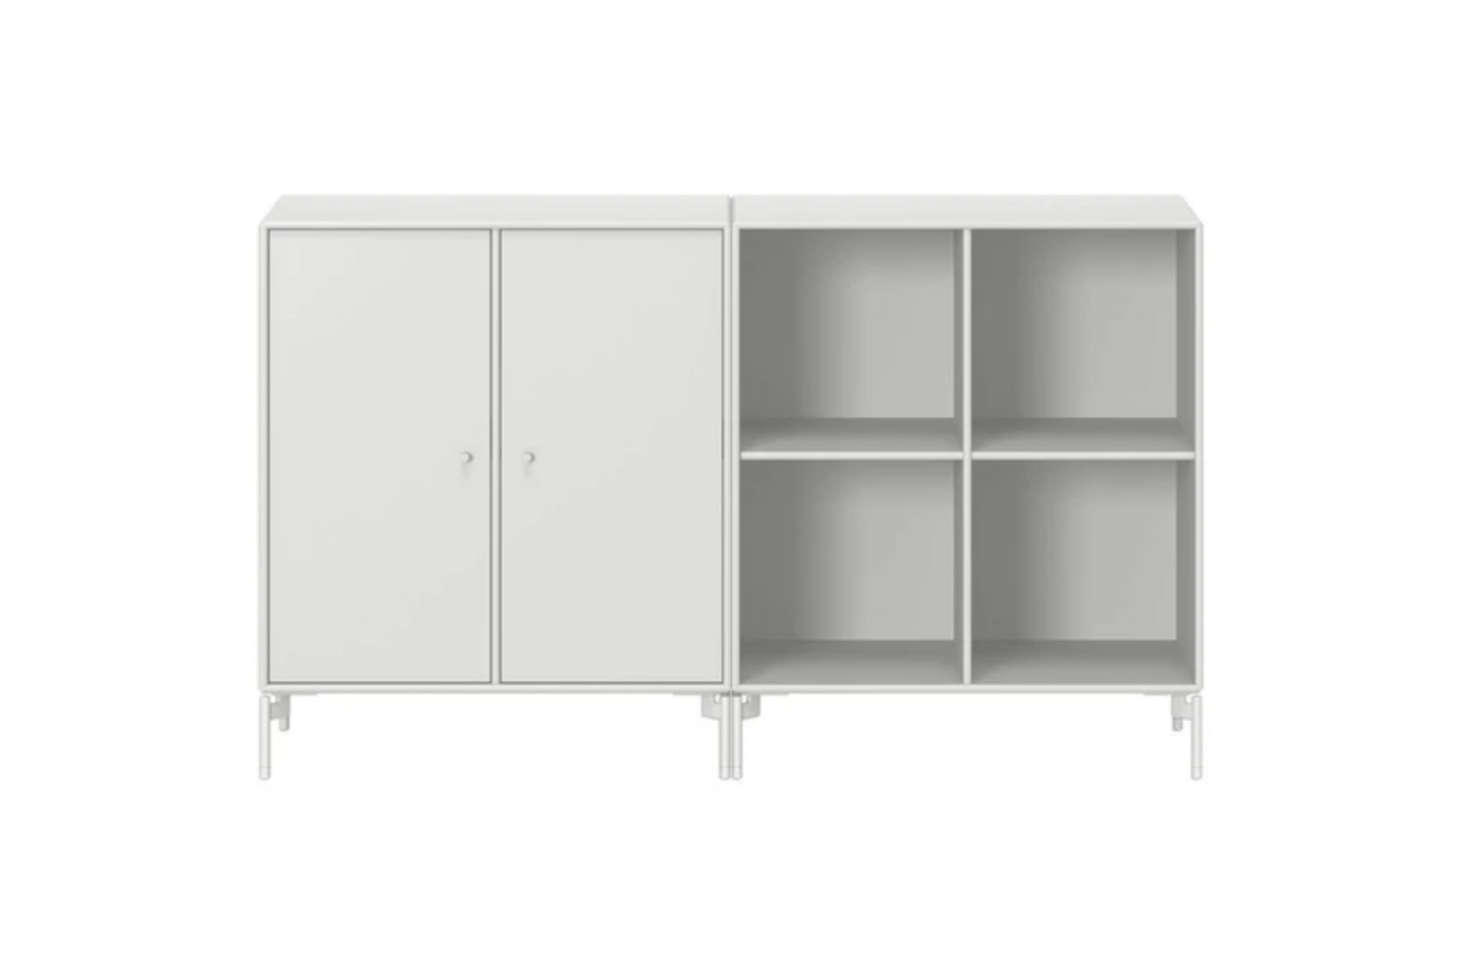 By Peter J. Lassen for Montana Møbler, the Pair Sideboard with Legs comes in a wide array of colors; $